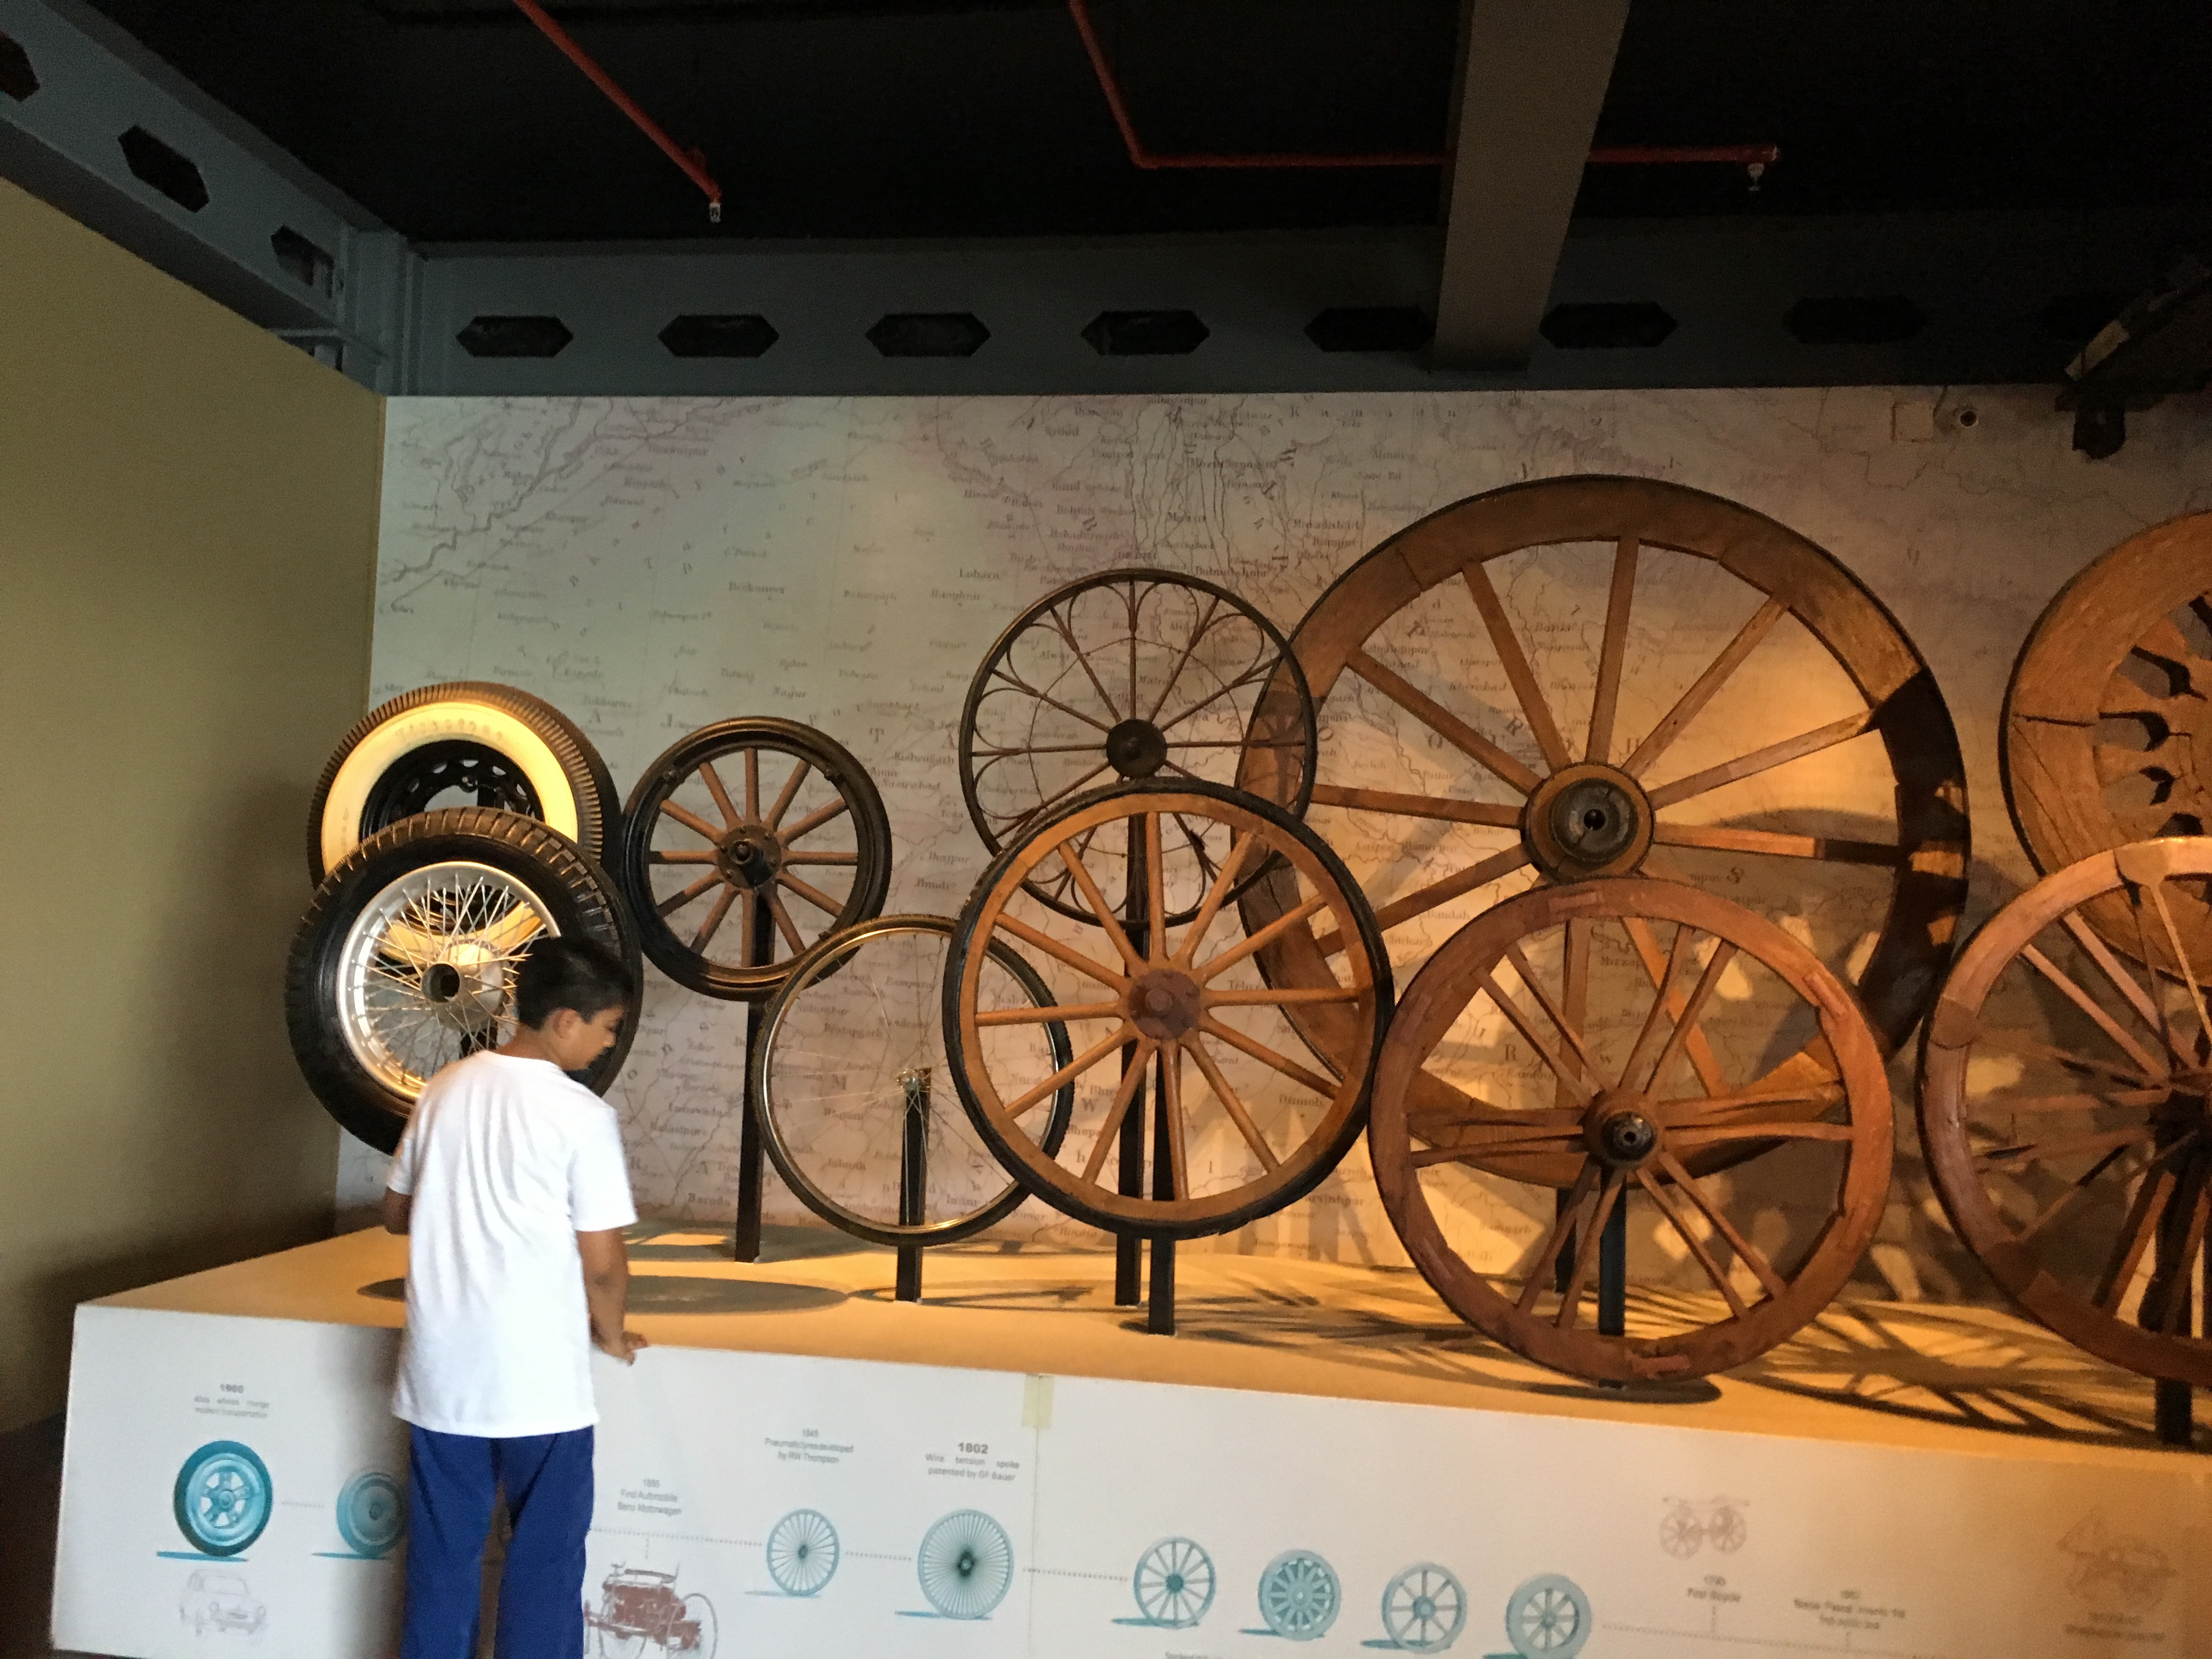 Depicts evolution of wheels through ages